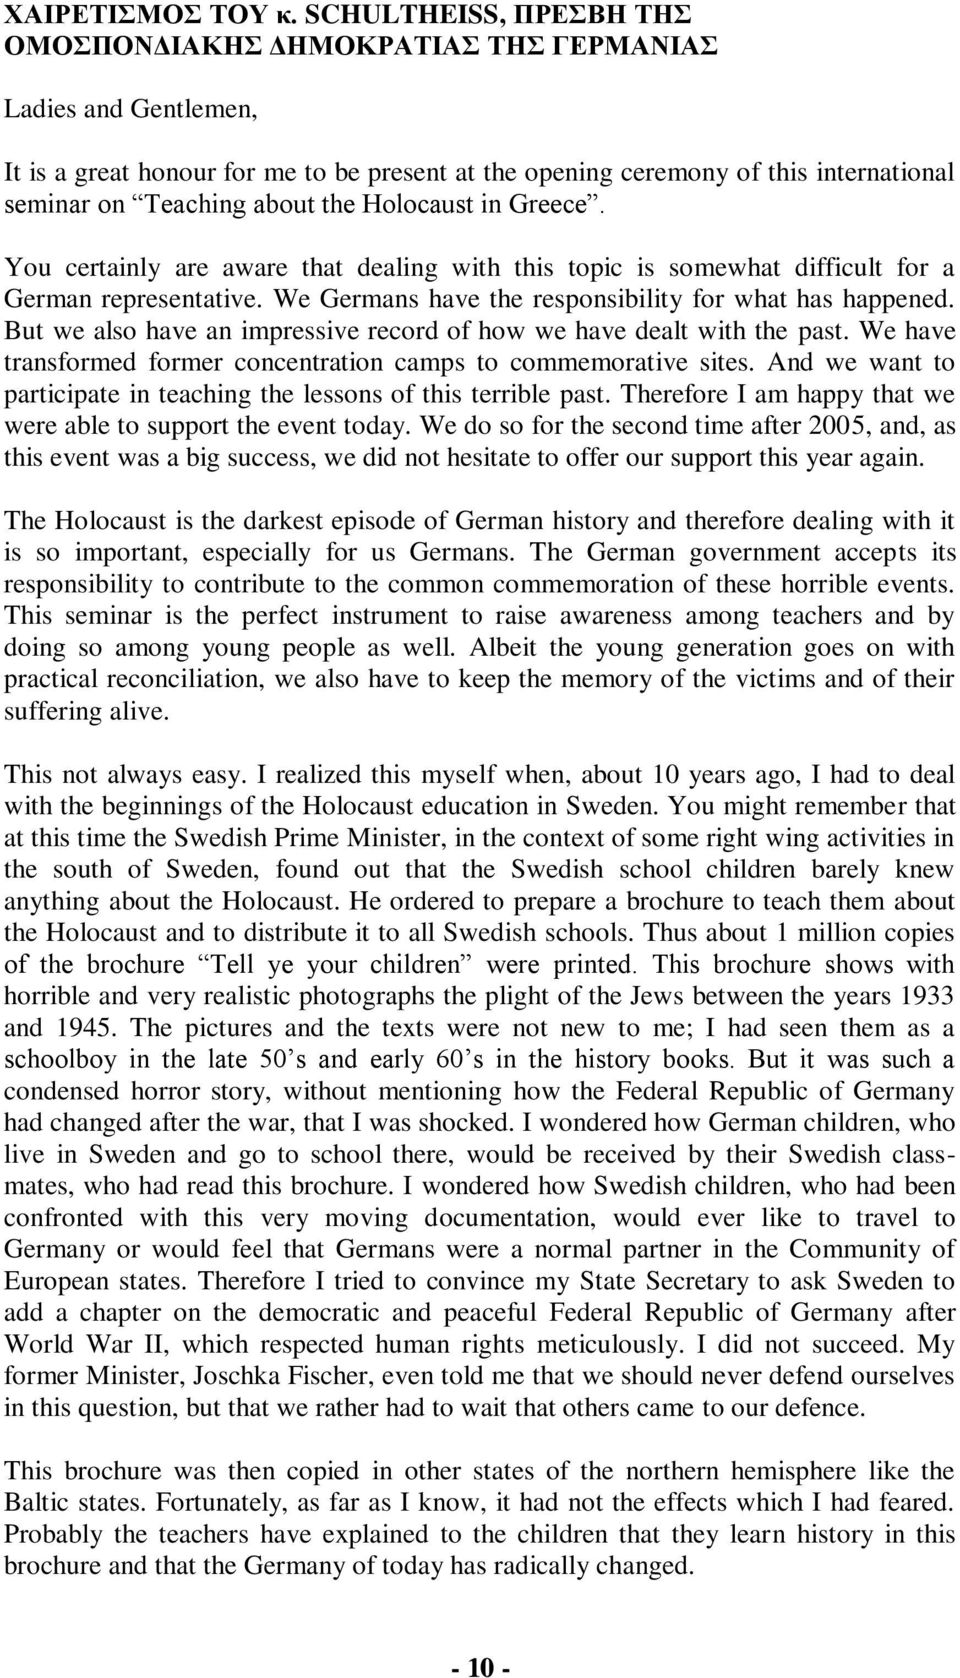 Holocaust in Greece. You certainly are aware that dealing with this topic is somewhat difficult for a German representative. We Germans have the responsibility for what has happened.